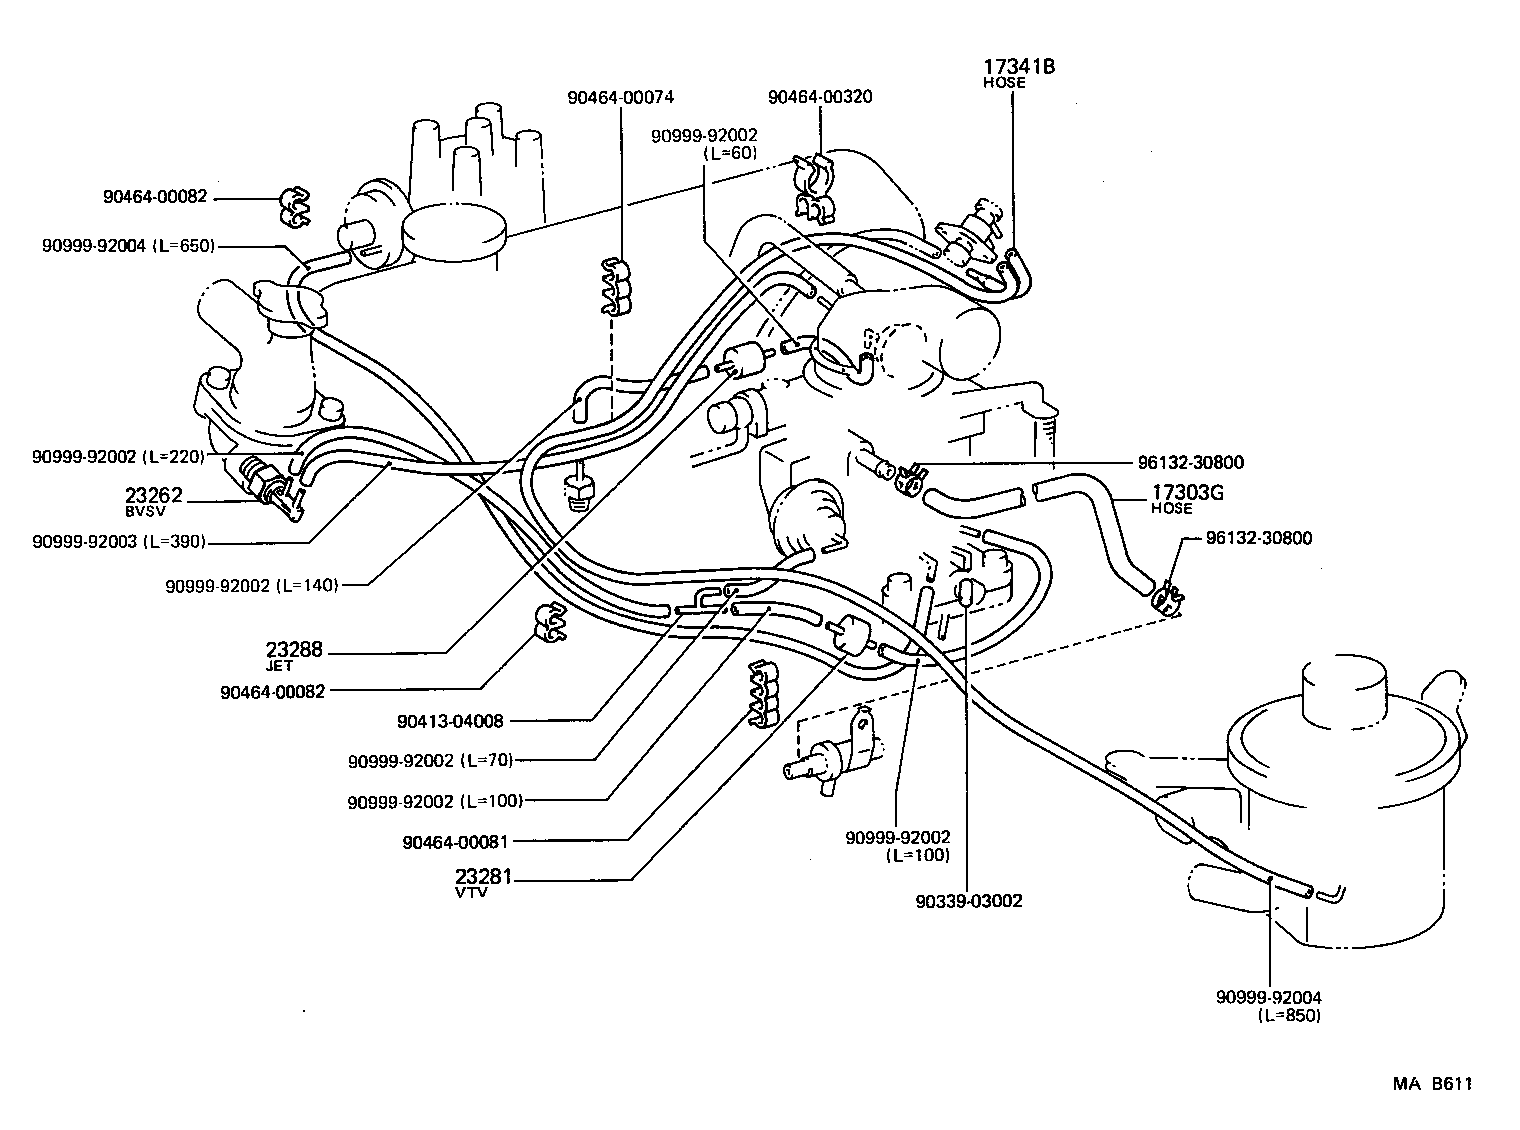 Toyota 5k Engine Diagram. Toyota. Auto Wiring Diagram